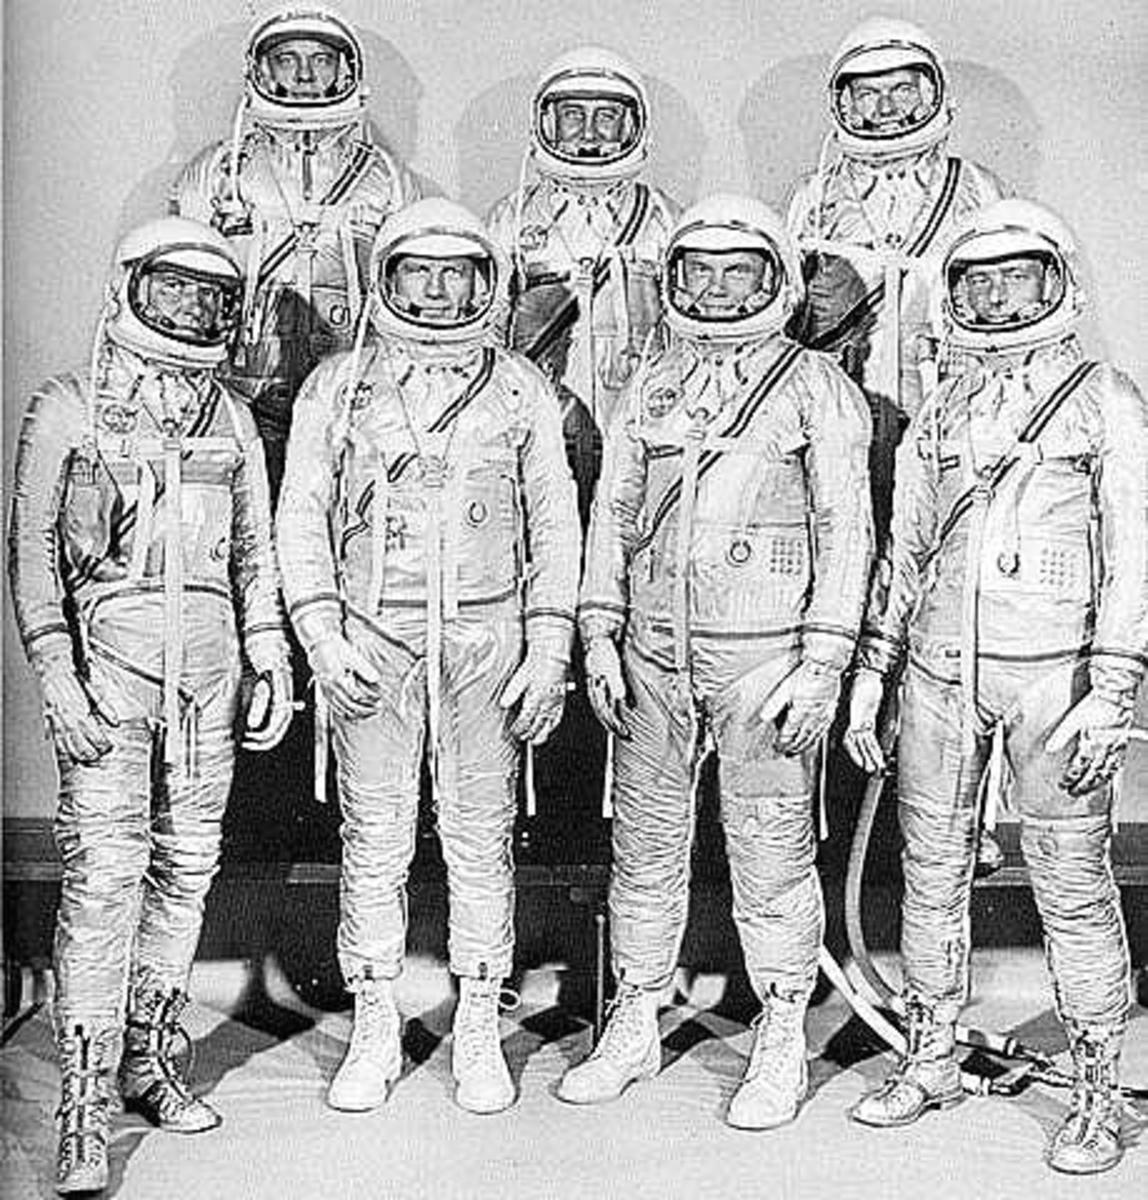 Mercury 1 Team